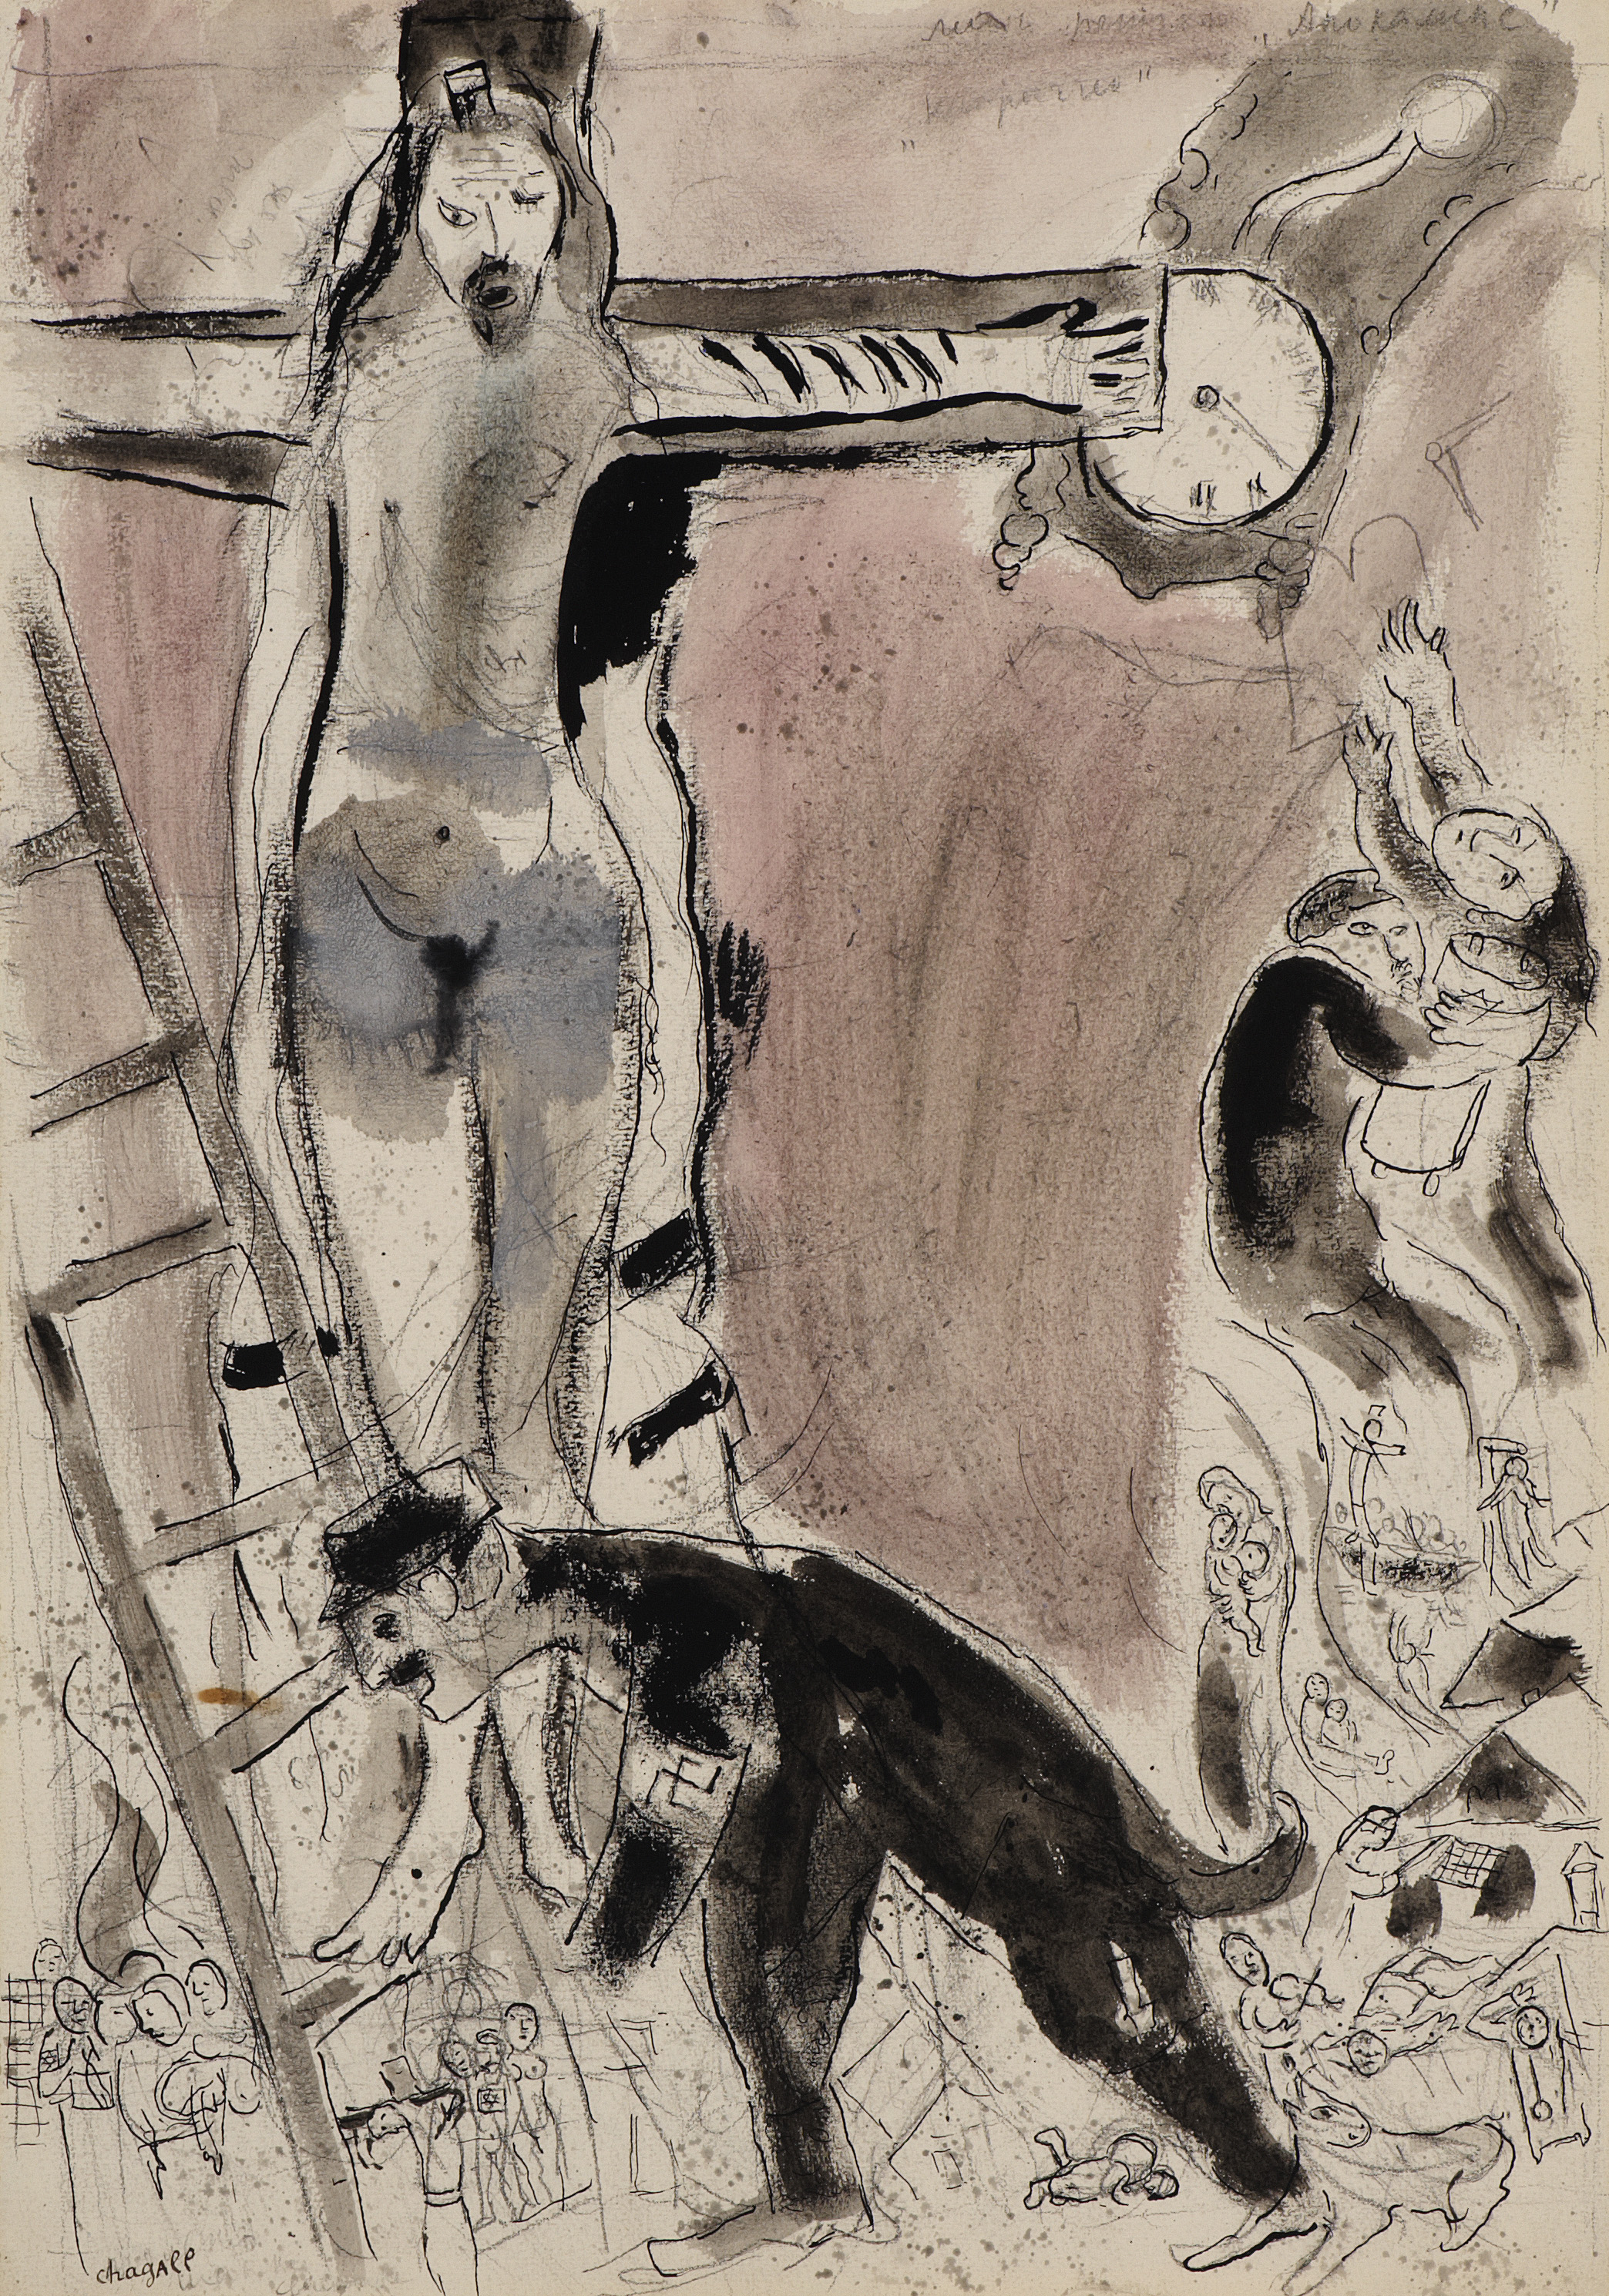 Ben Uri Gallery  & Museum  in London:'Curates world class exhibitions and is now ready to bring them to America', 'from Russia to Paris: Chaïm Soutine and his contemporaries'by Sarah MacDougall